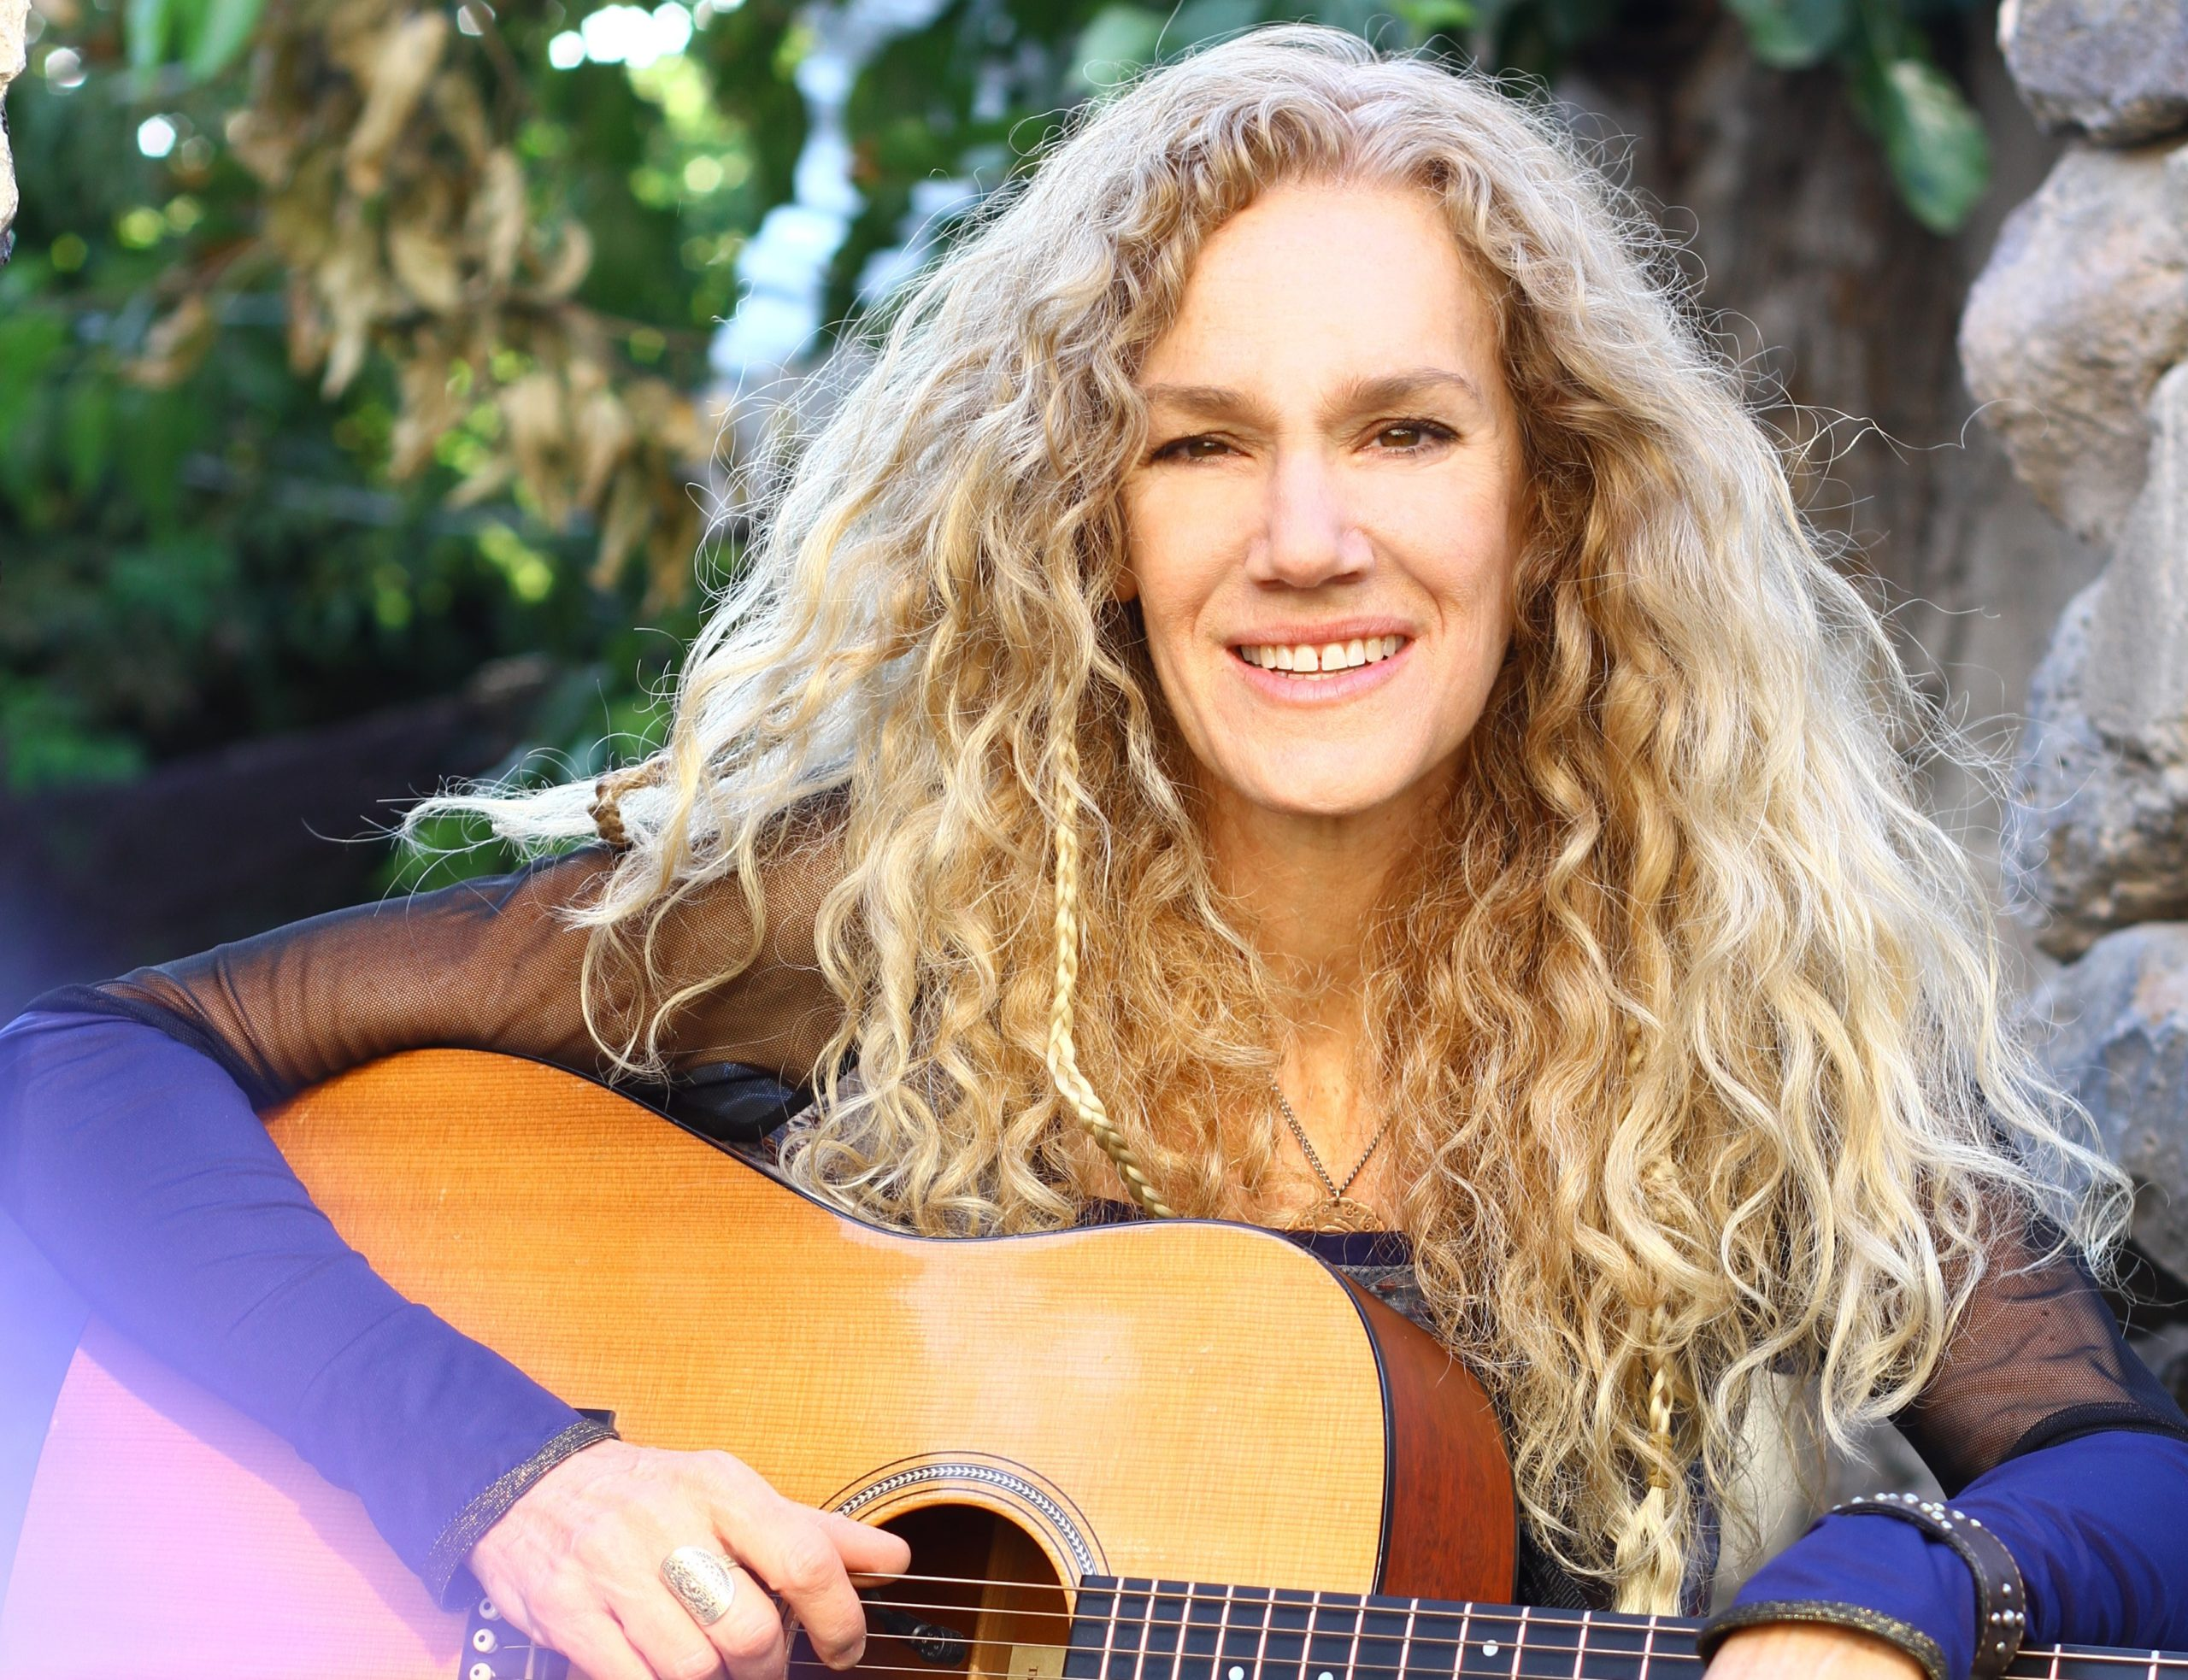 Singer/Songwriter Bet Williams to Perform at Uptown! Knauer Performing Arts Center